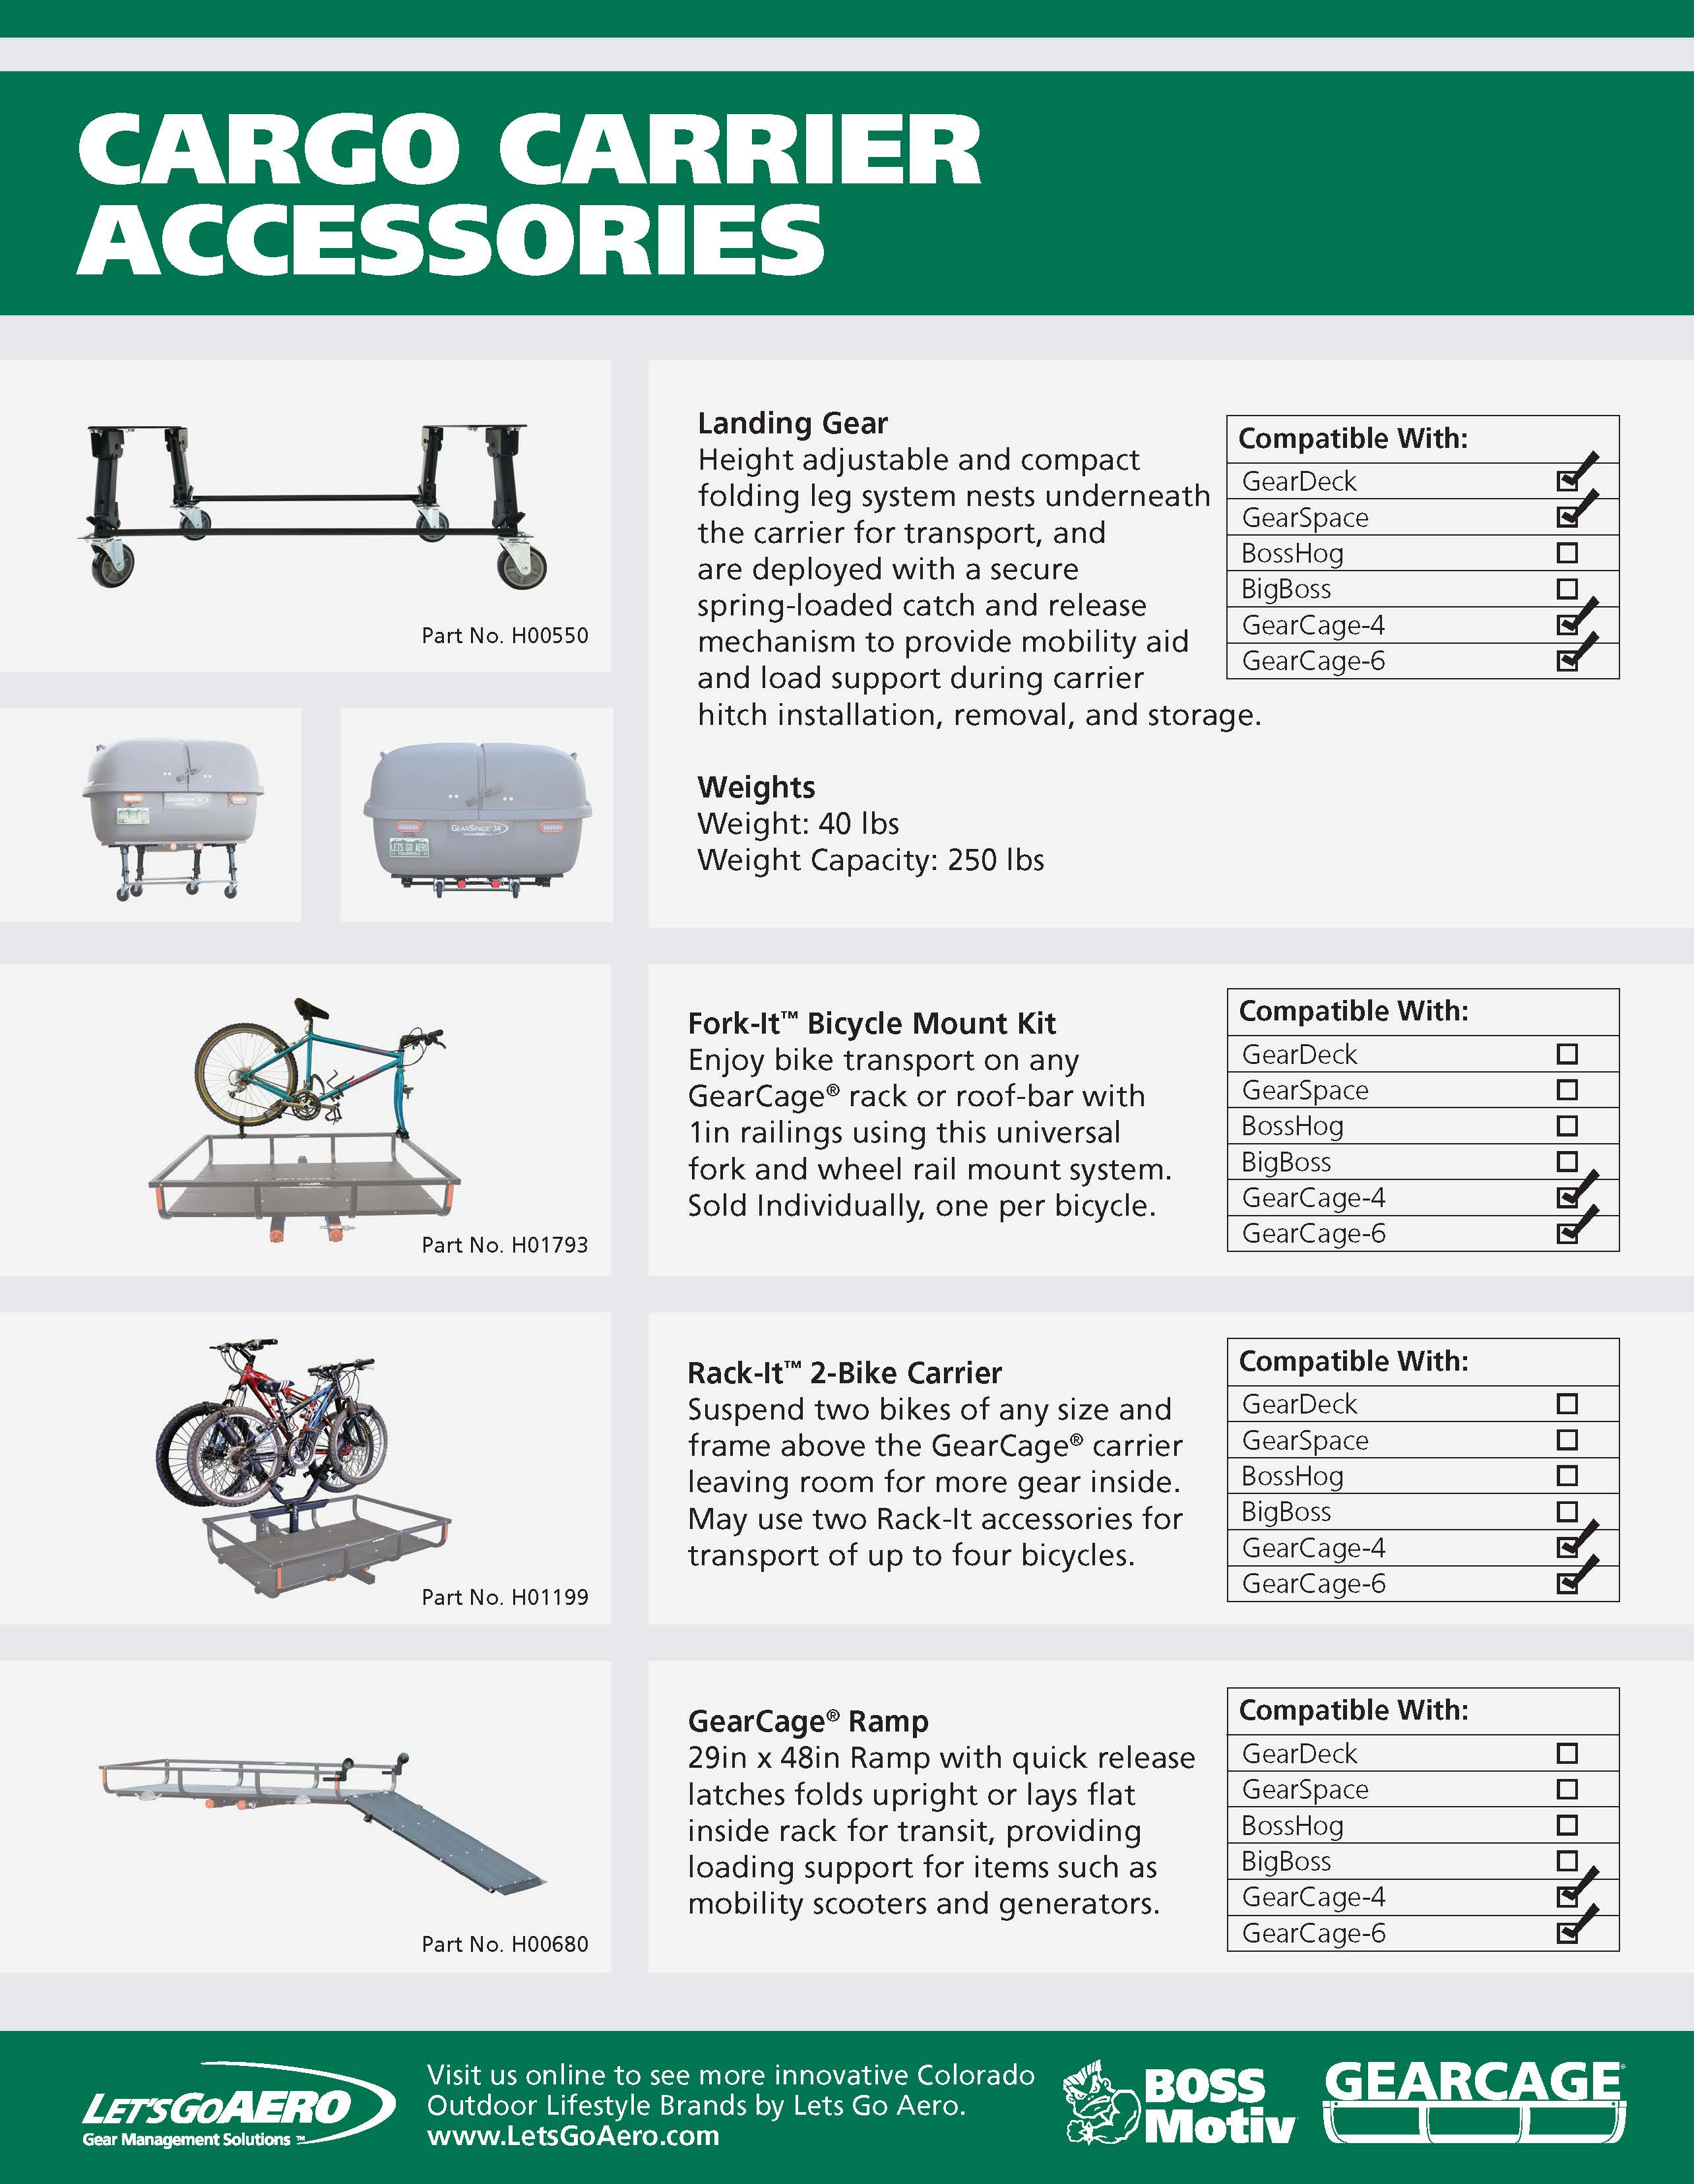 Cargo Carrier Accessories Catalog